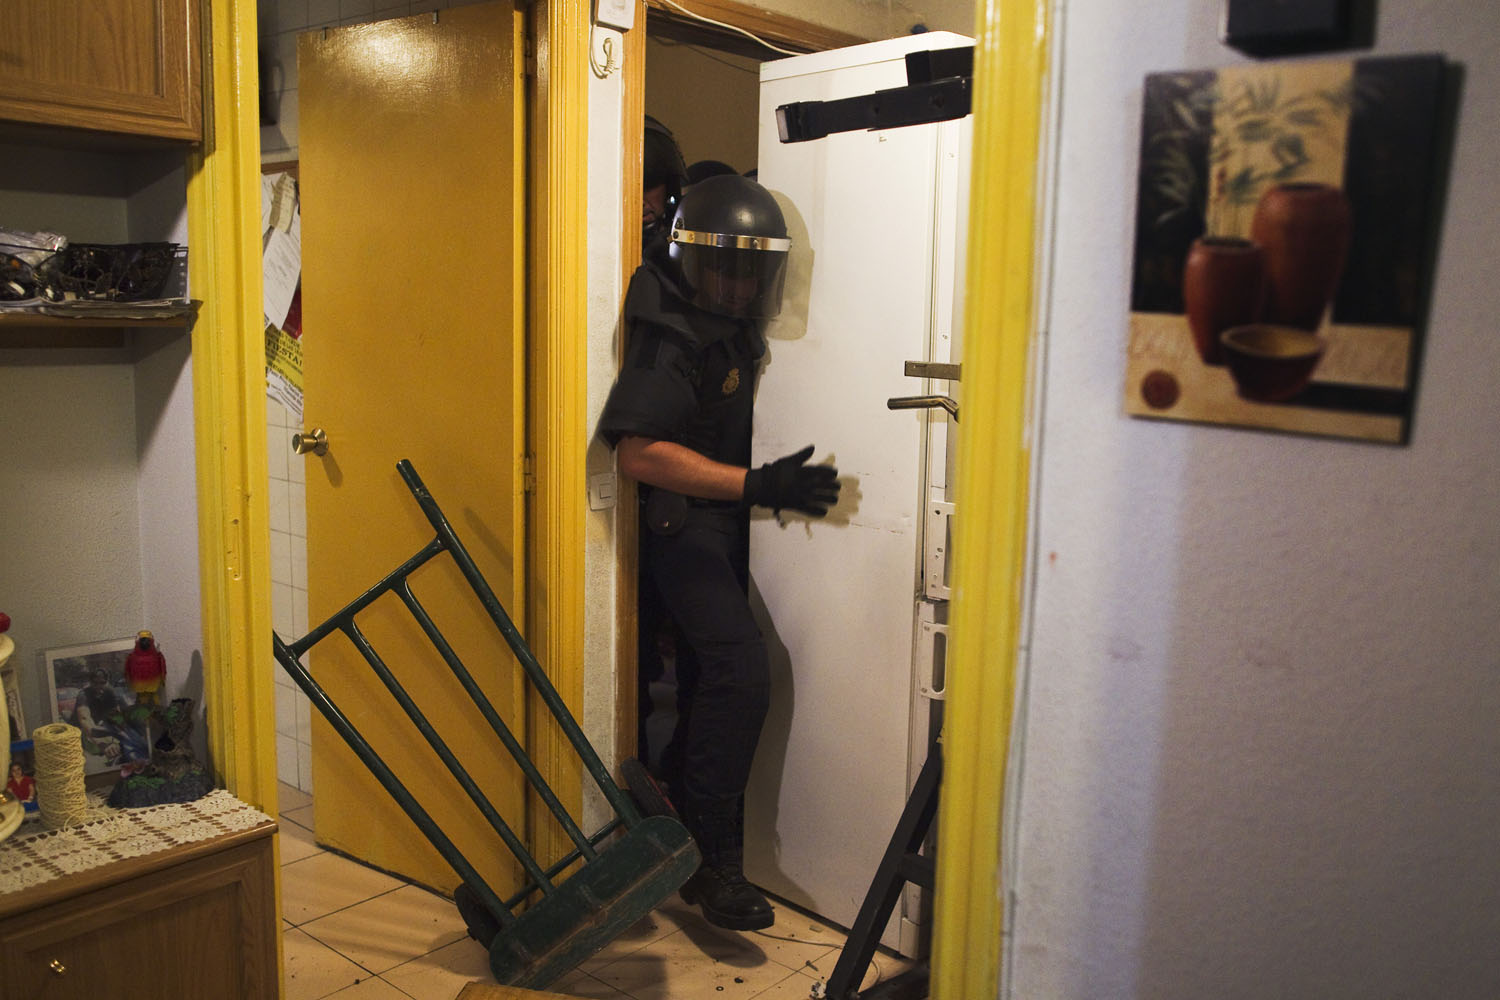 Sept. 25, 2013. Police remove the door and push away a refrigerator as they break into Maria Isabel Rodriguez Romero's apartment to evict her and her family in Madrid.